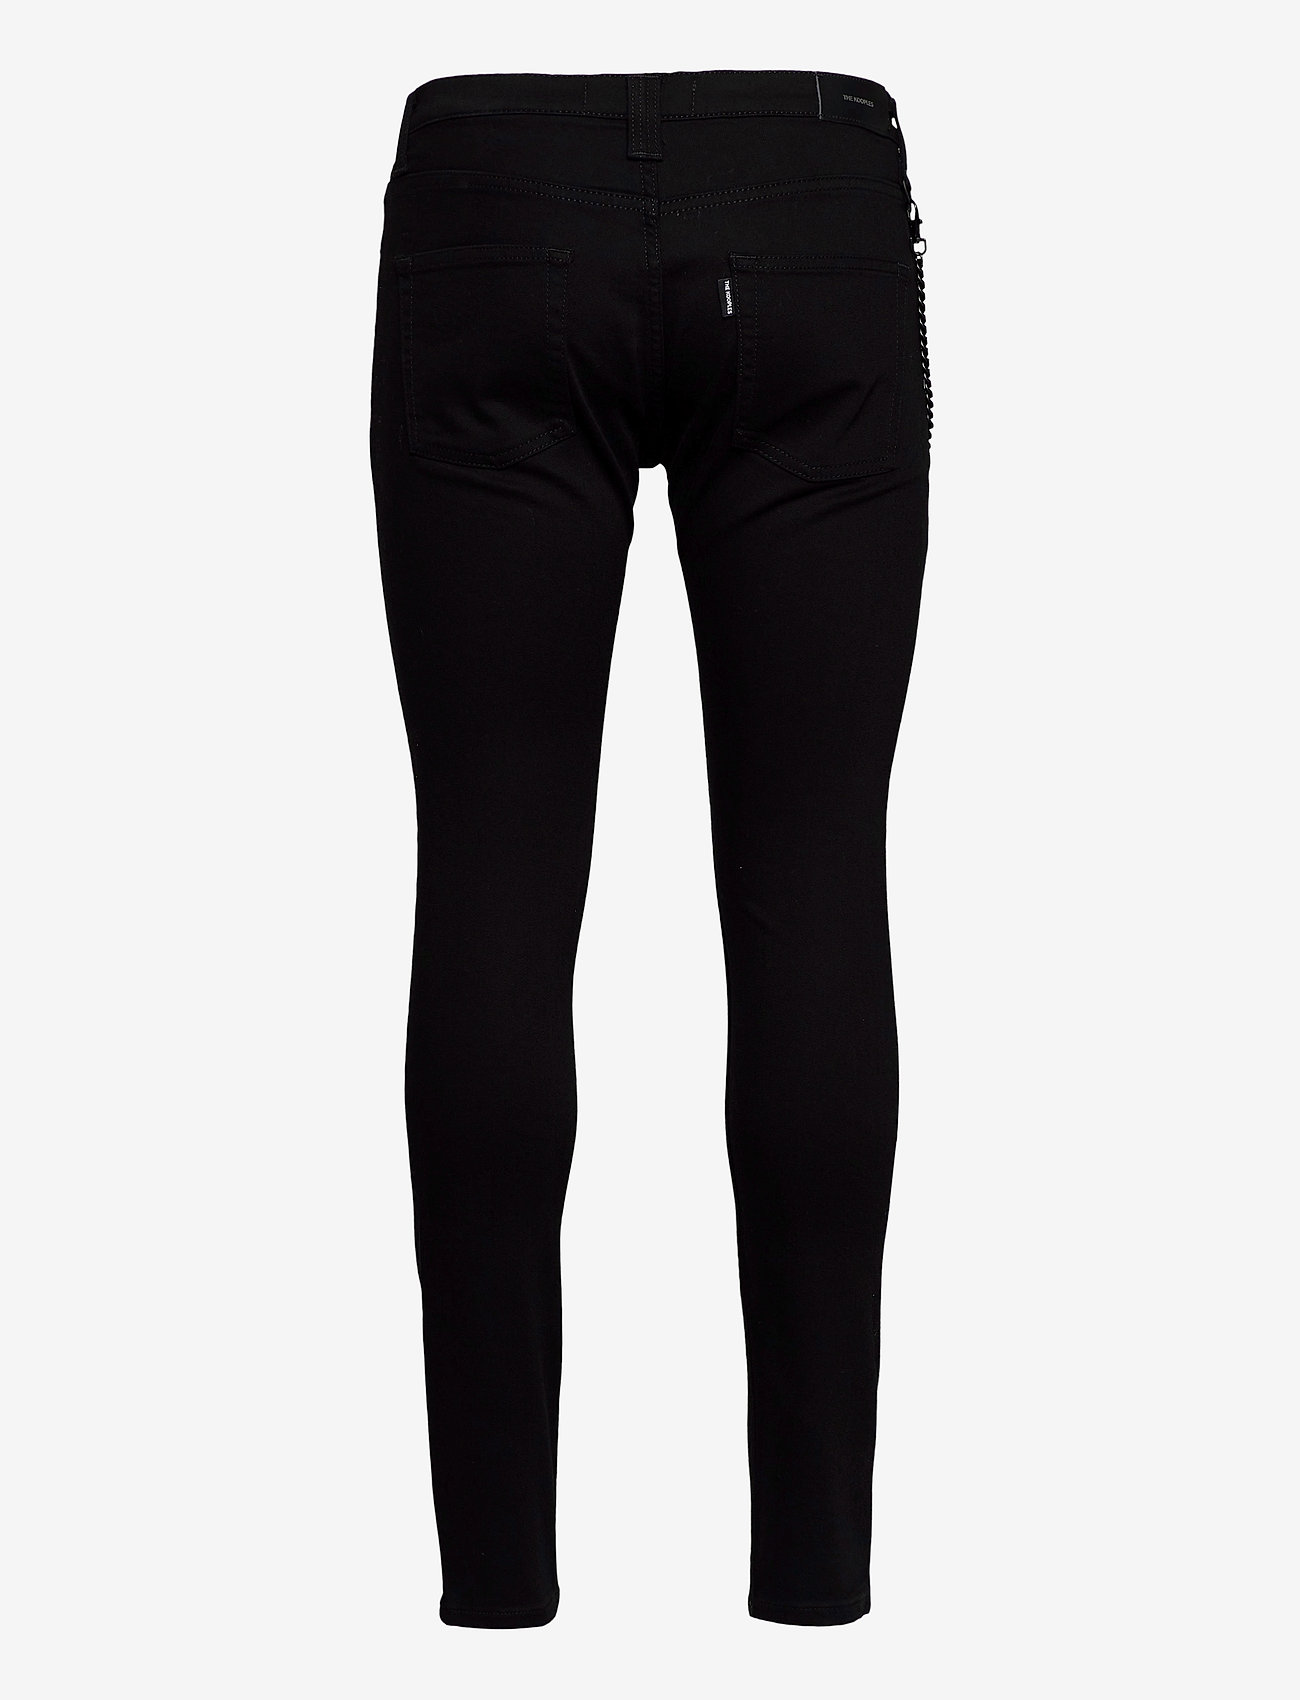 The Kooples - JEAN - slim jeans - black - 1